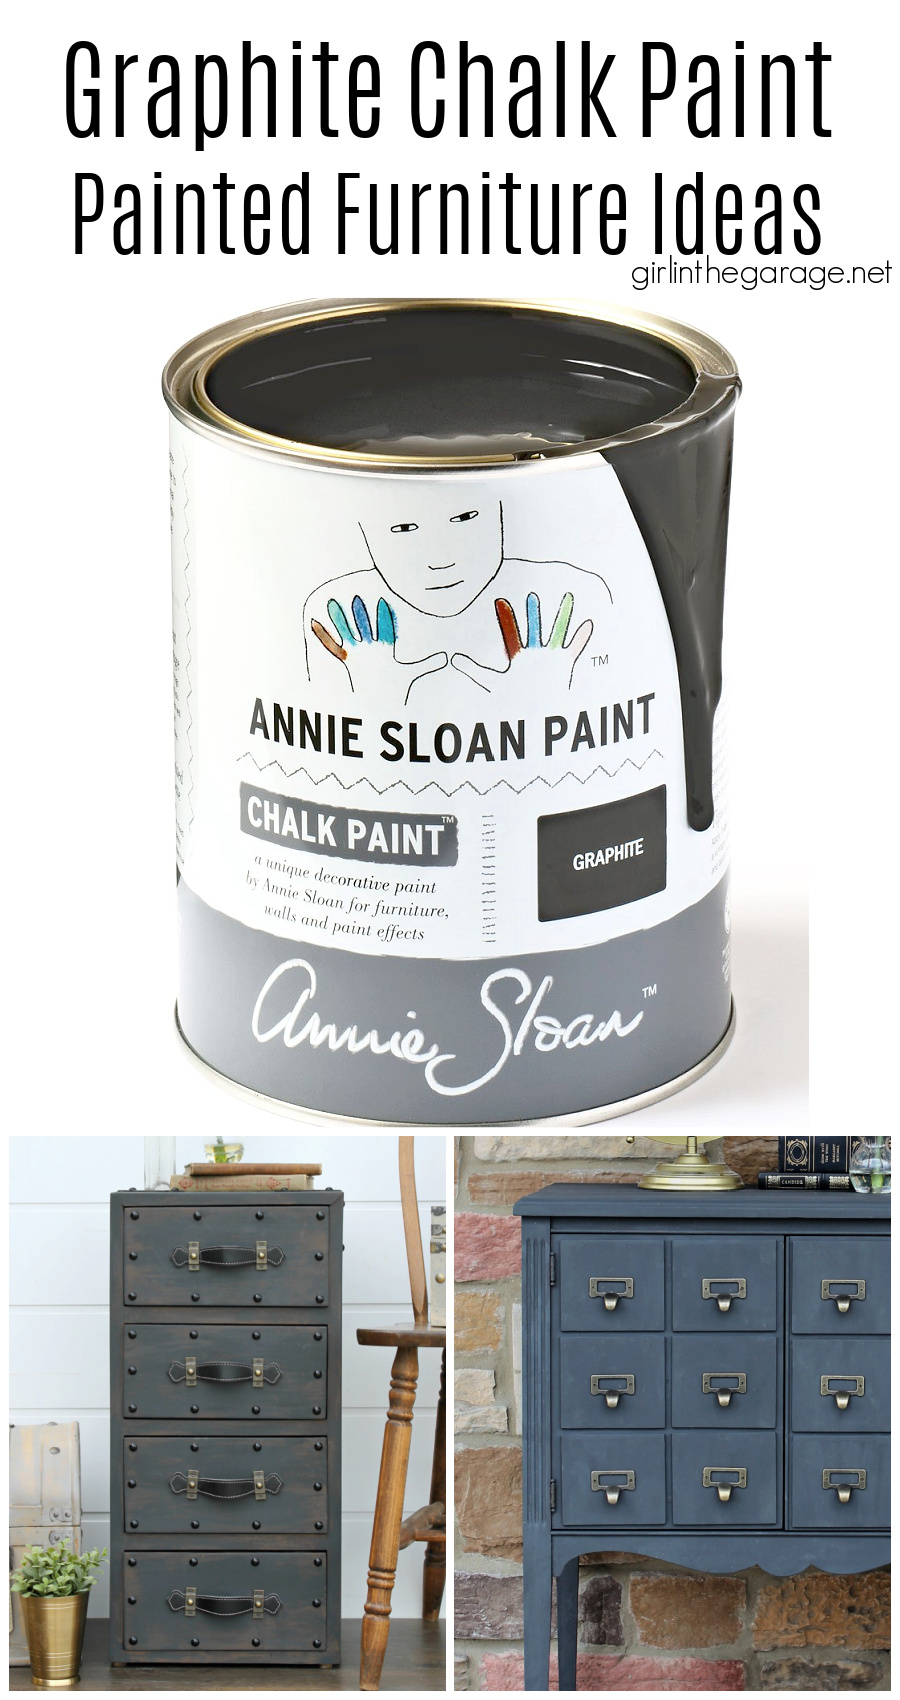 Learn all about Graphite Chalk Paint by Annie Sloan - including how to best use it and seal it. Also see stunning Graphite painted furniture ideas. By Girl in the Garage